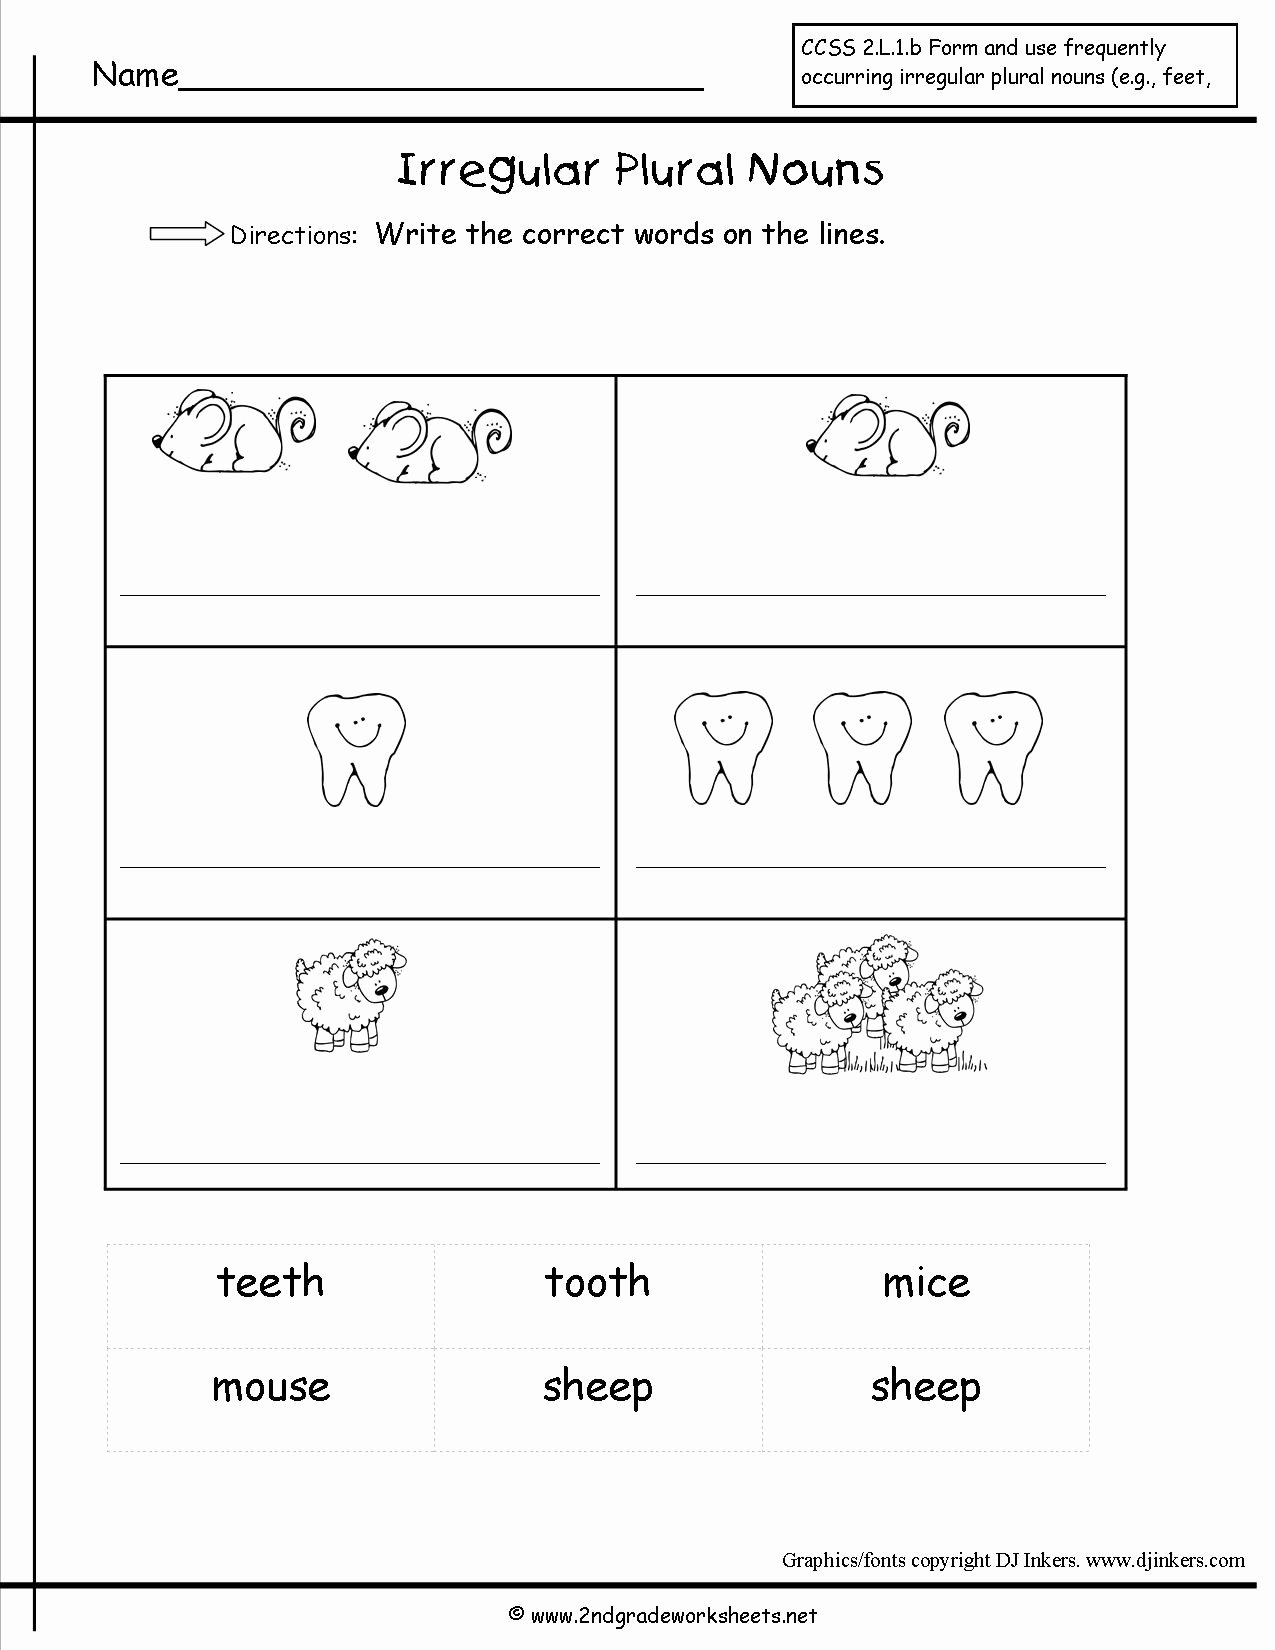 Irregular Plural Nouns Worksheet Fresh Singular and Plural Nouns Worksheets